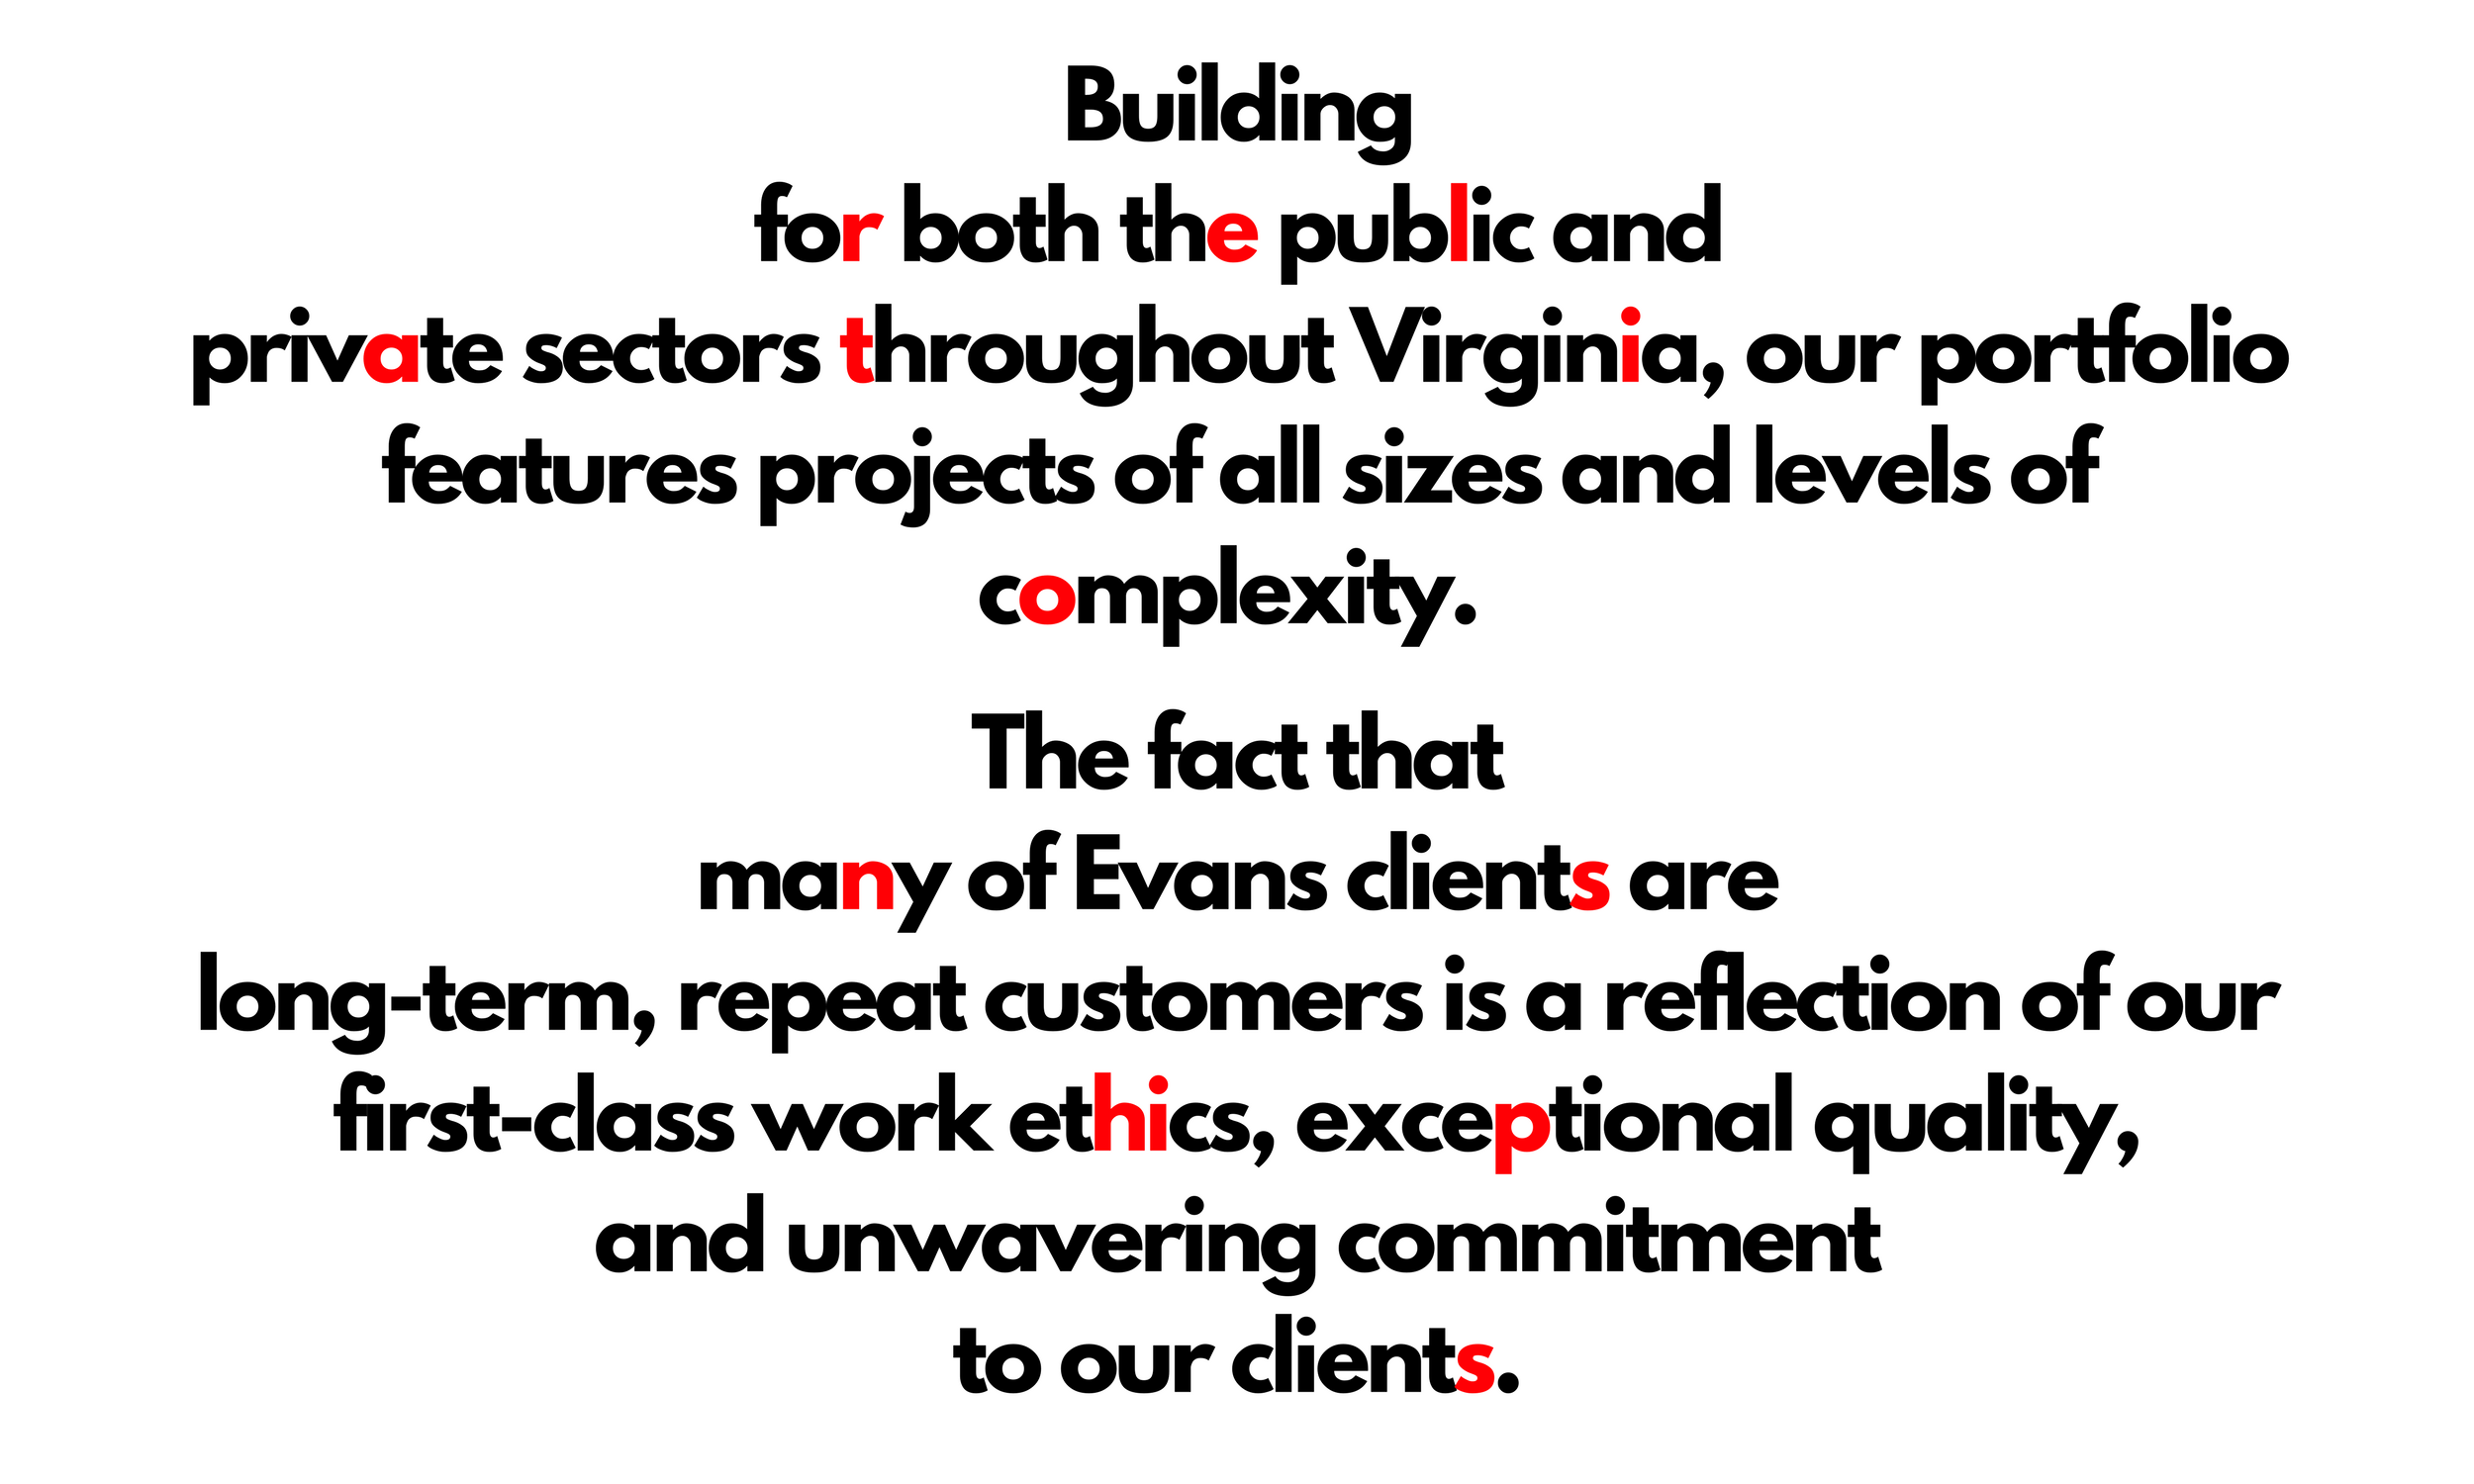 evans-construction-company-relationships-sandston-richmond-virginia-best-general-contractors